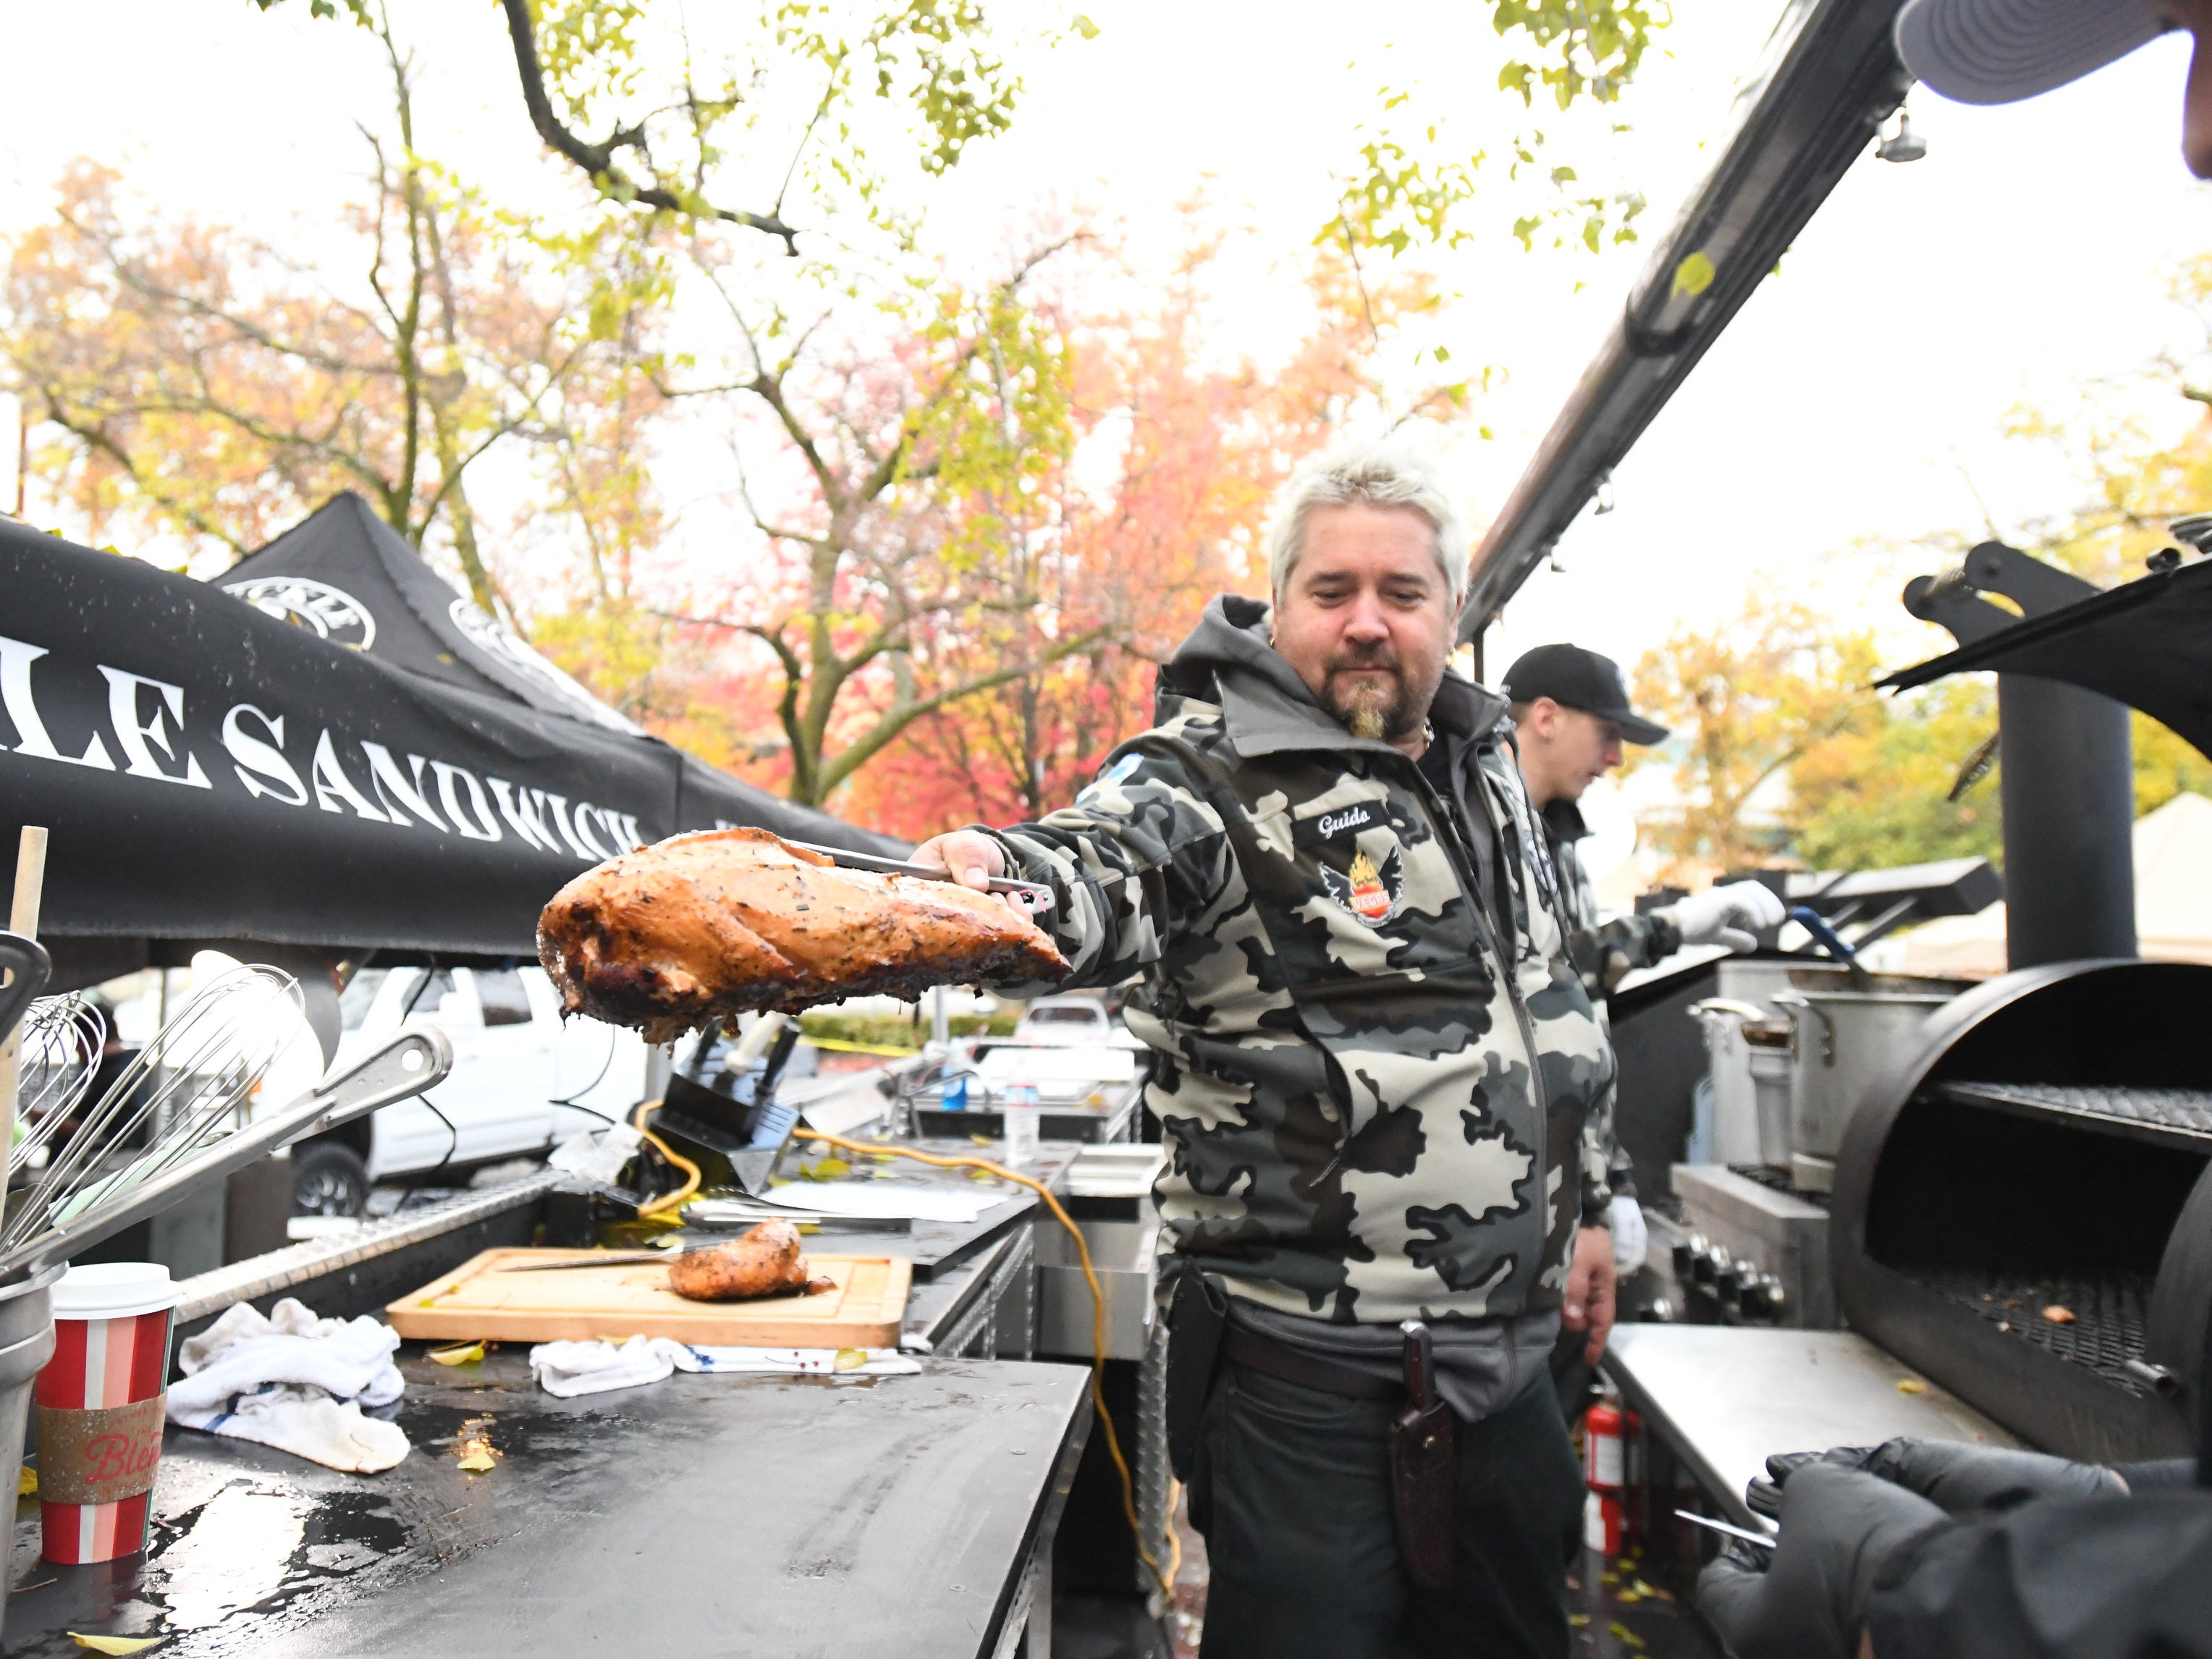 Chef Guy Fieri is among the hundreds of volunteers in downtown Chico, Calif., preparing Thanksgiving dinner on the morning of Nov. 22, 2018 for  evacuees of the Camp Fire in Northern California.